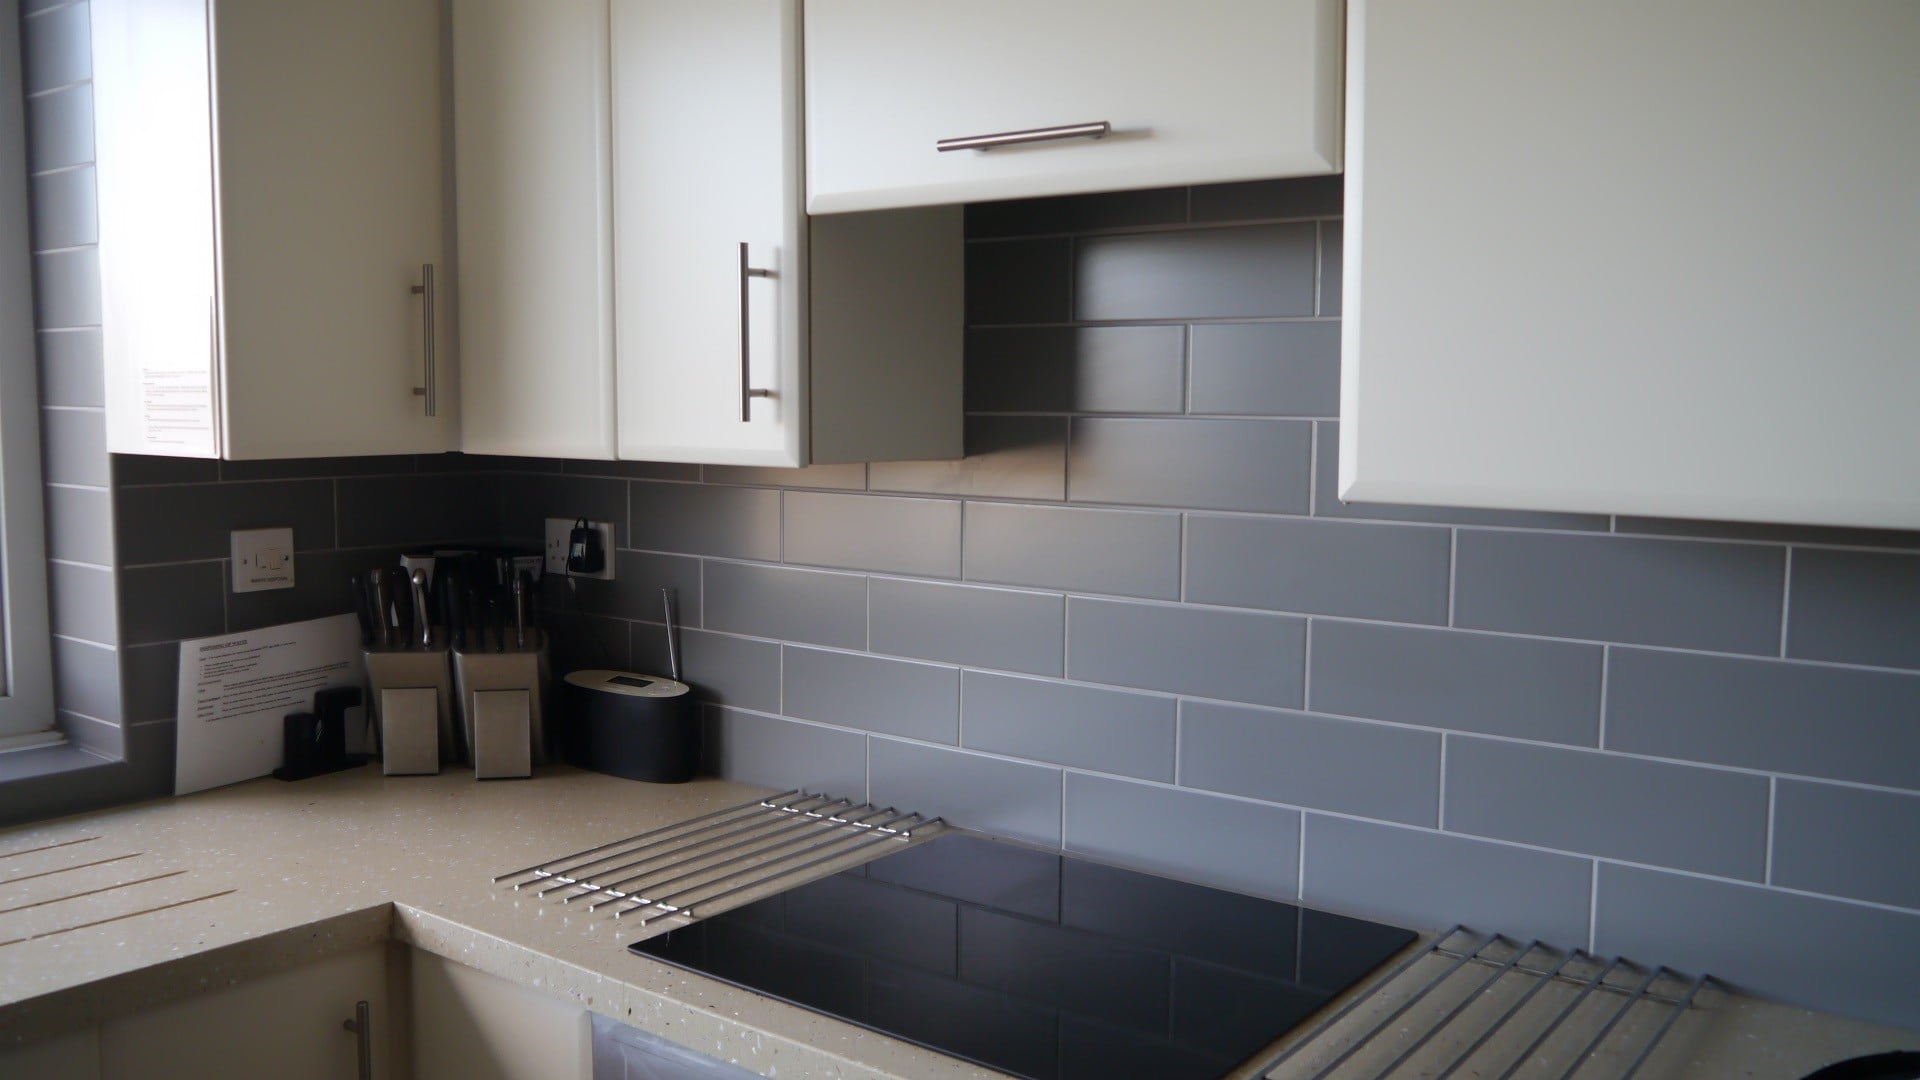 kitchen hob and tiles